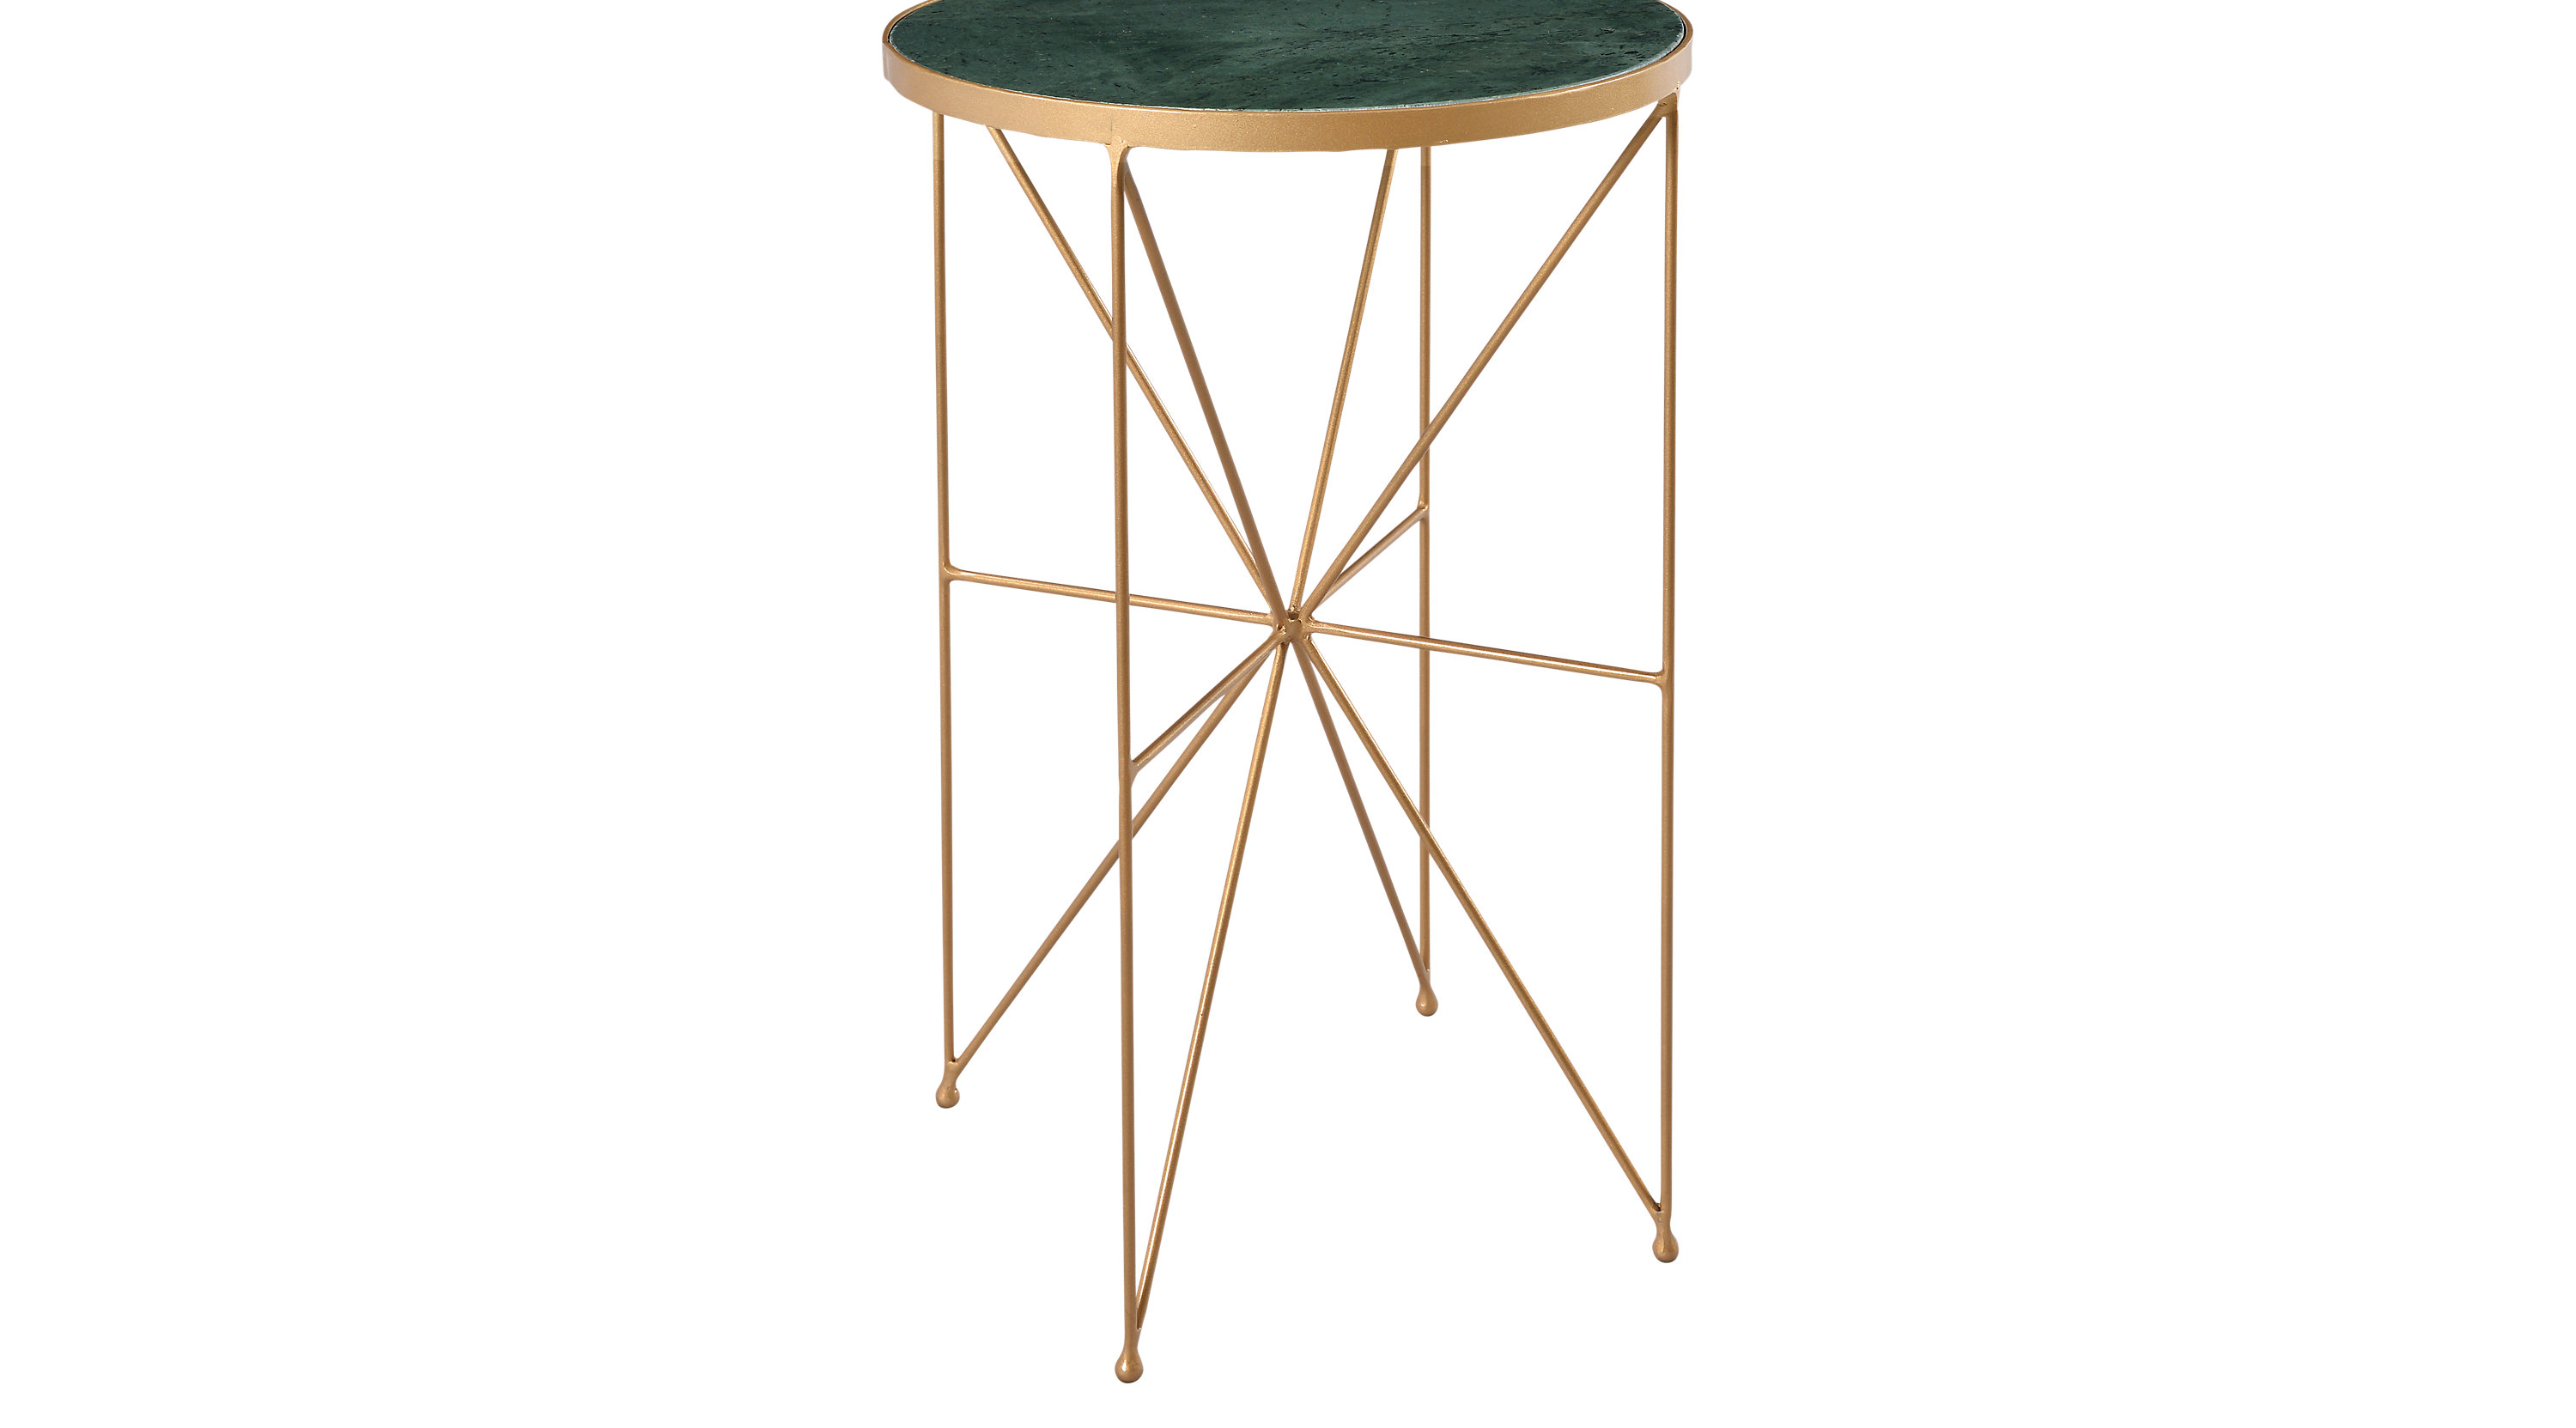 kimana gold accent table stool nautical dining room chandelier multi colored interior design ideas for living teak sofa canadian tire outdoor drop leaf desk large console with